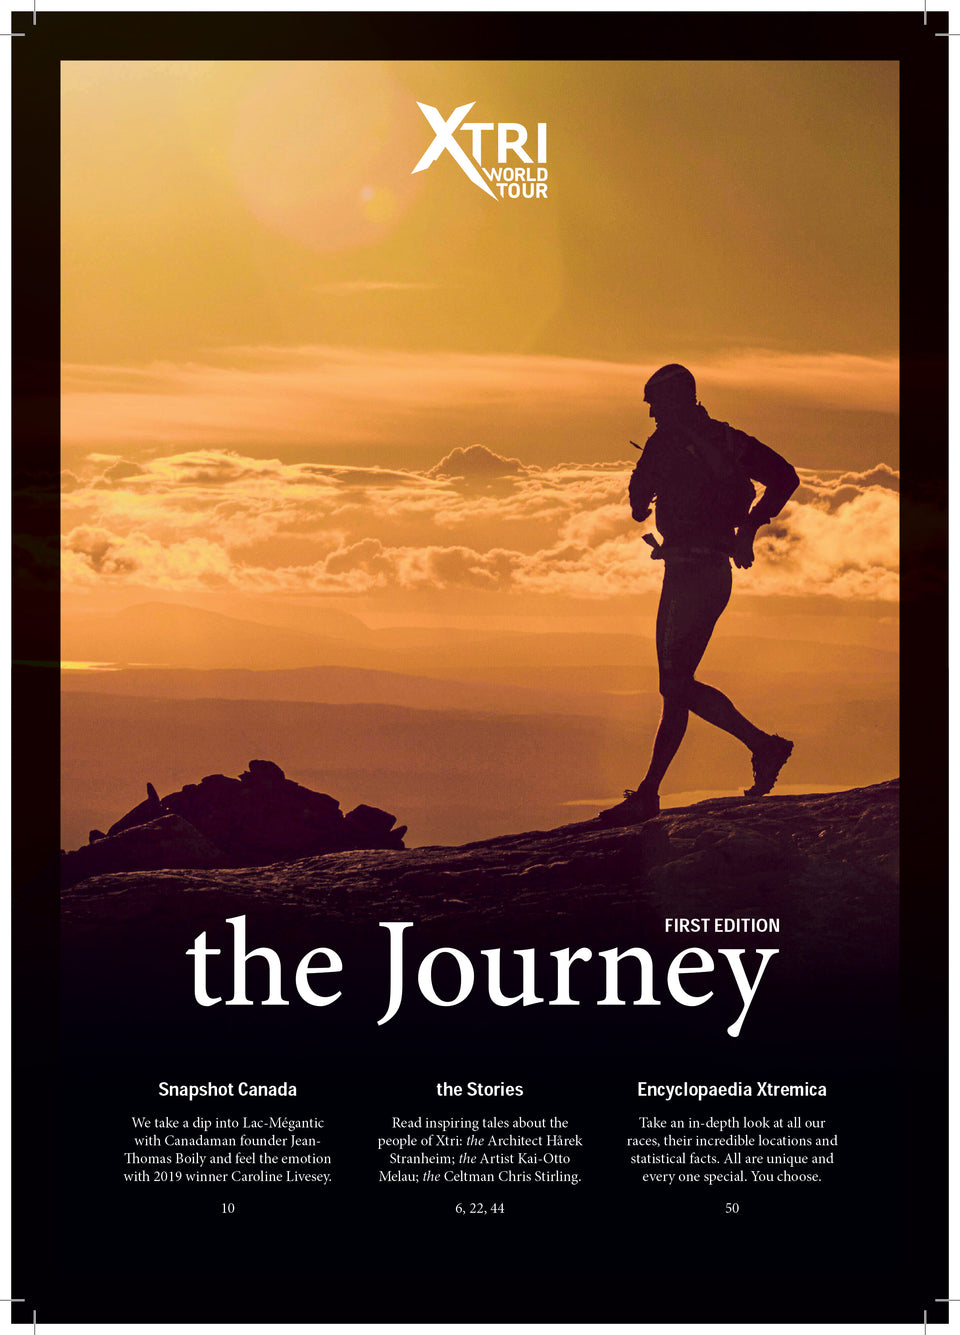 XTRI the Journey Magazine - FIRST EDITION (Printed Copy)